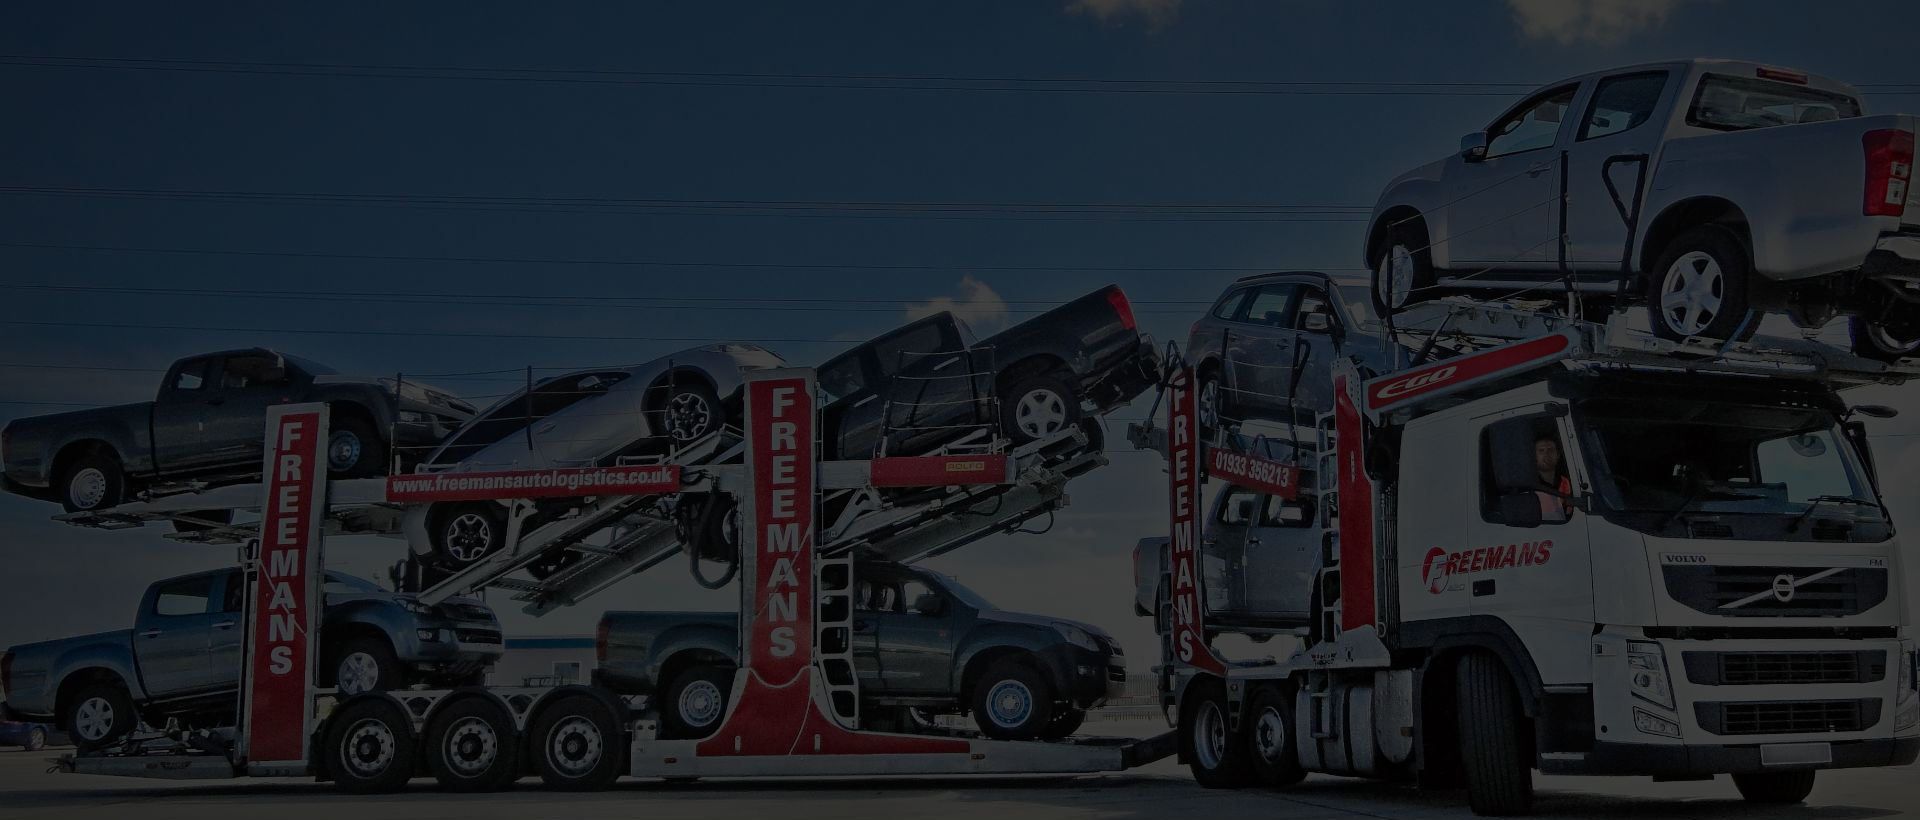 Car Shipping Quote Car Shipping Rates & Auto Transport Quotes  Movewheels